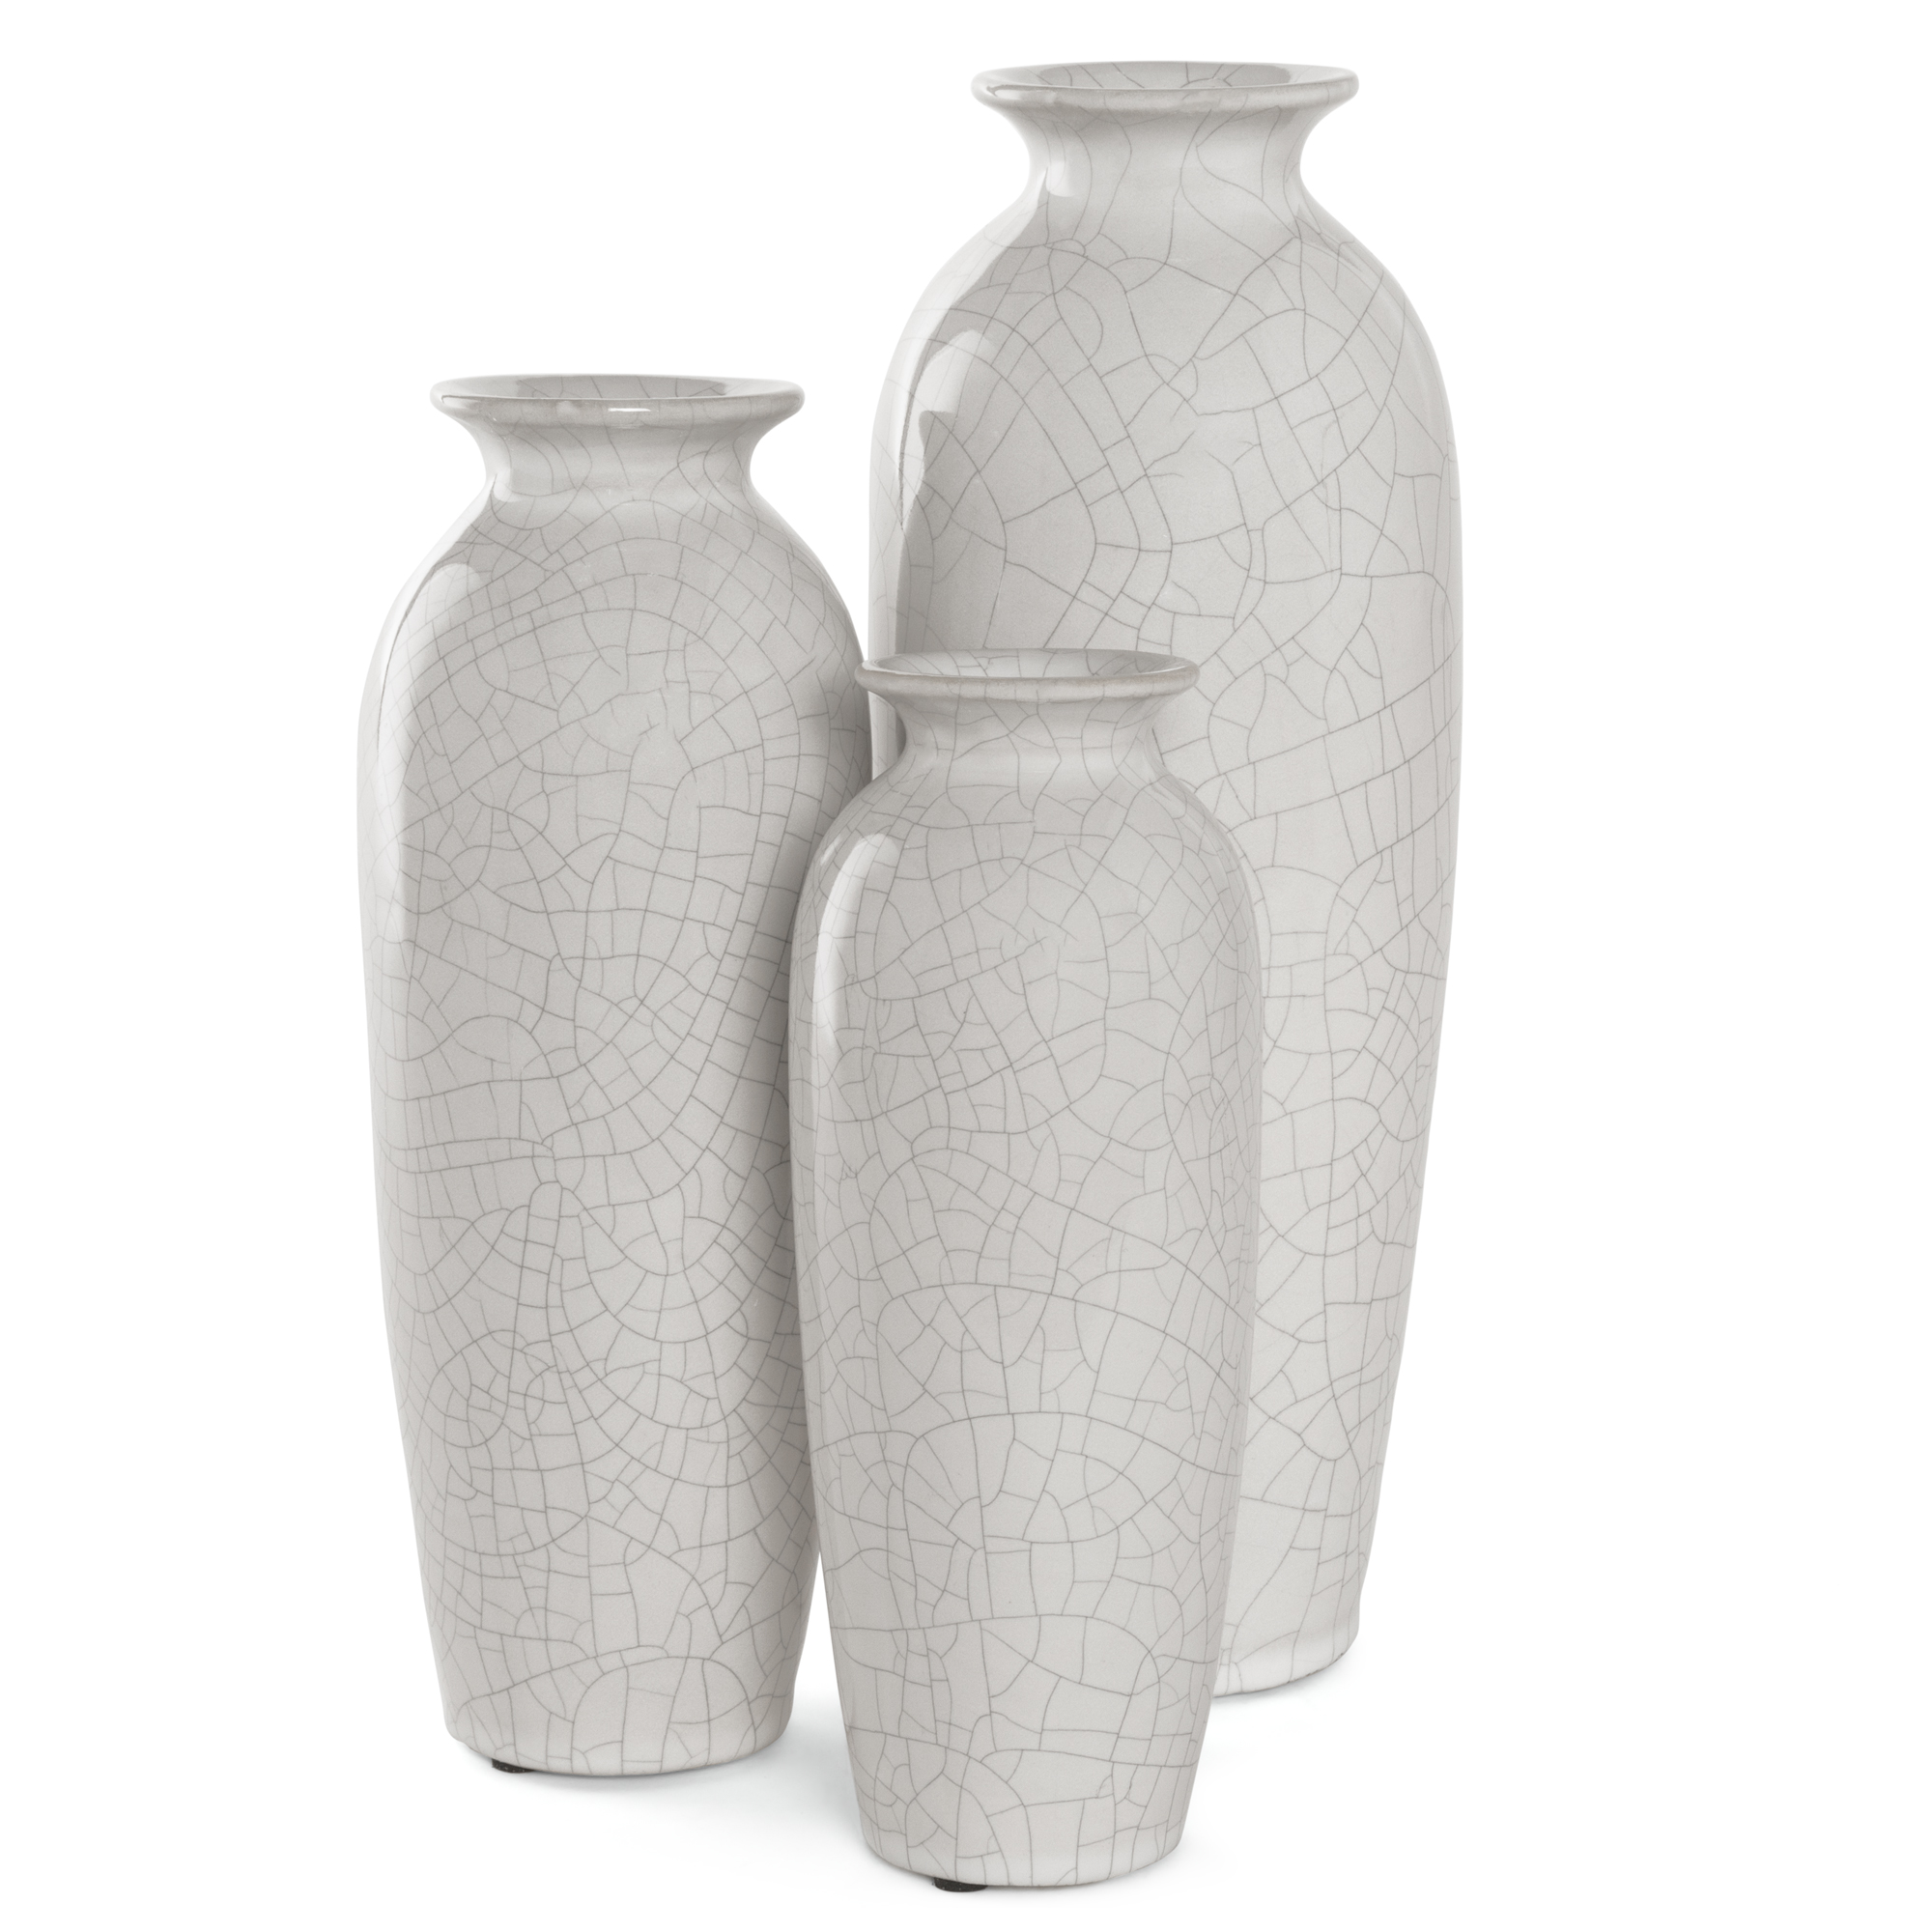 Best Choice Products Set Of 3 Decorative Modern Ceramic Table Vases Home  Accents For Flowers, Dining, Side Tables W/ Assorted Sizes   White    Walmart.com